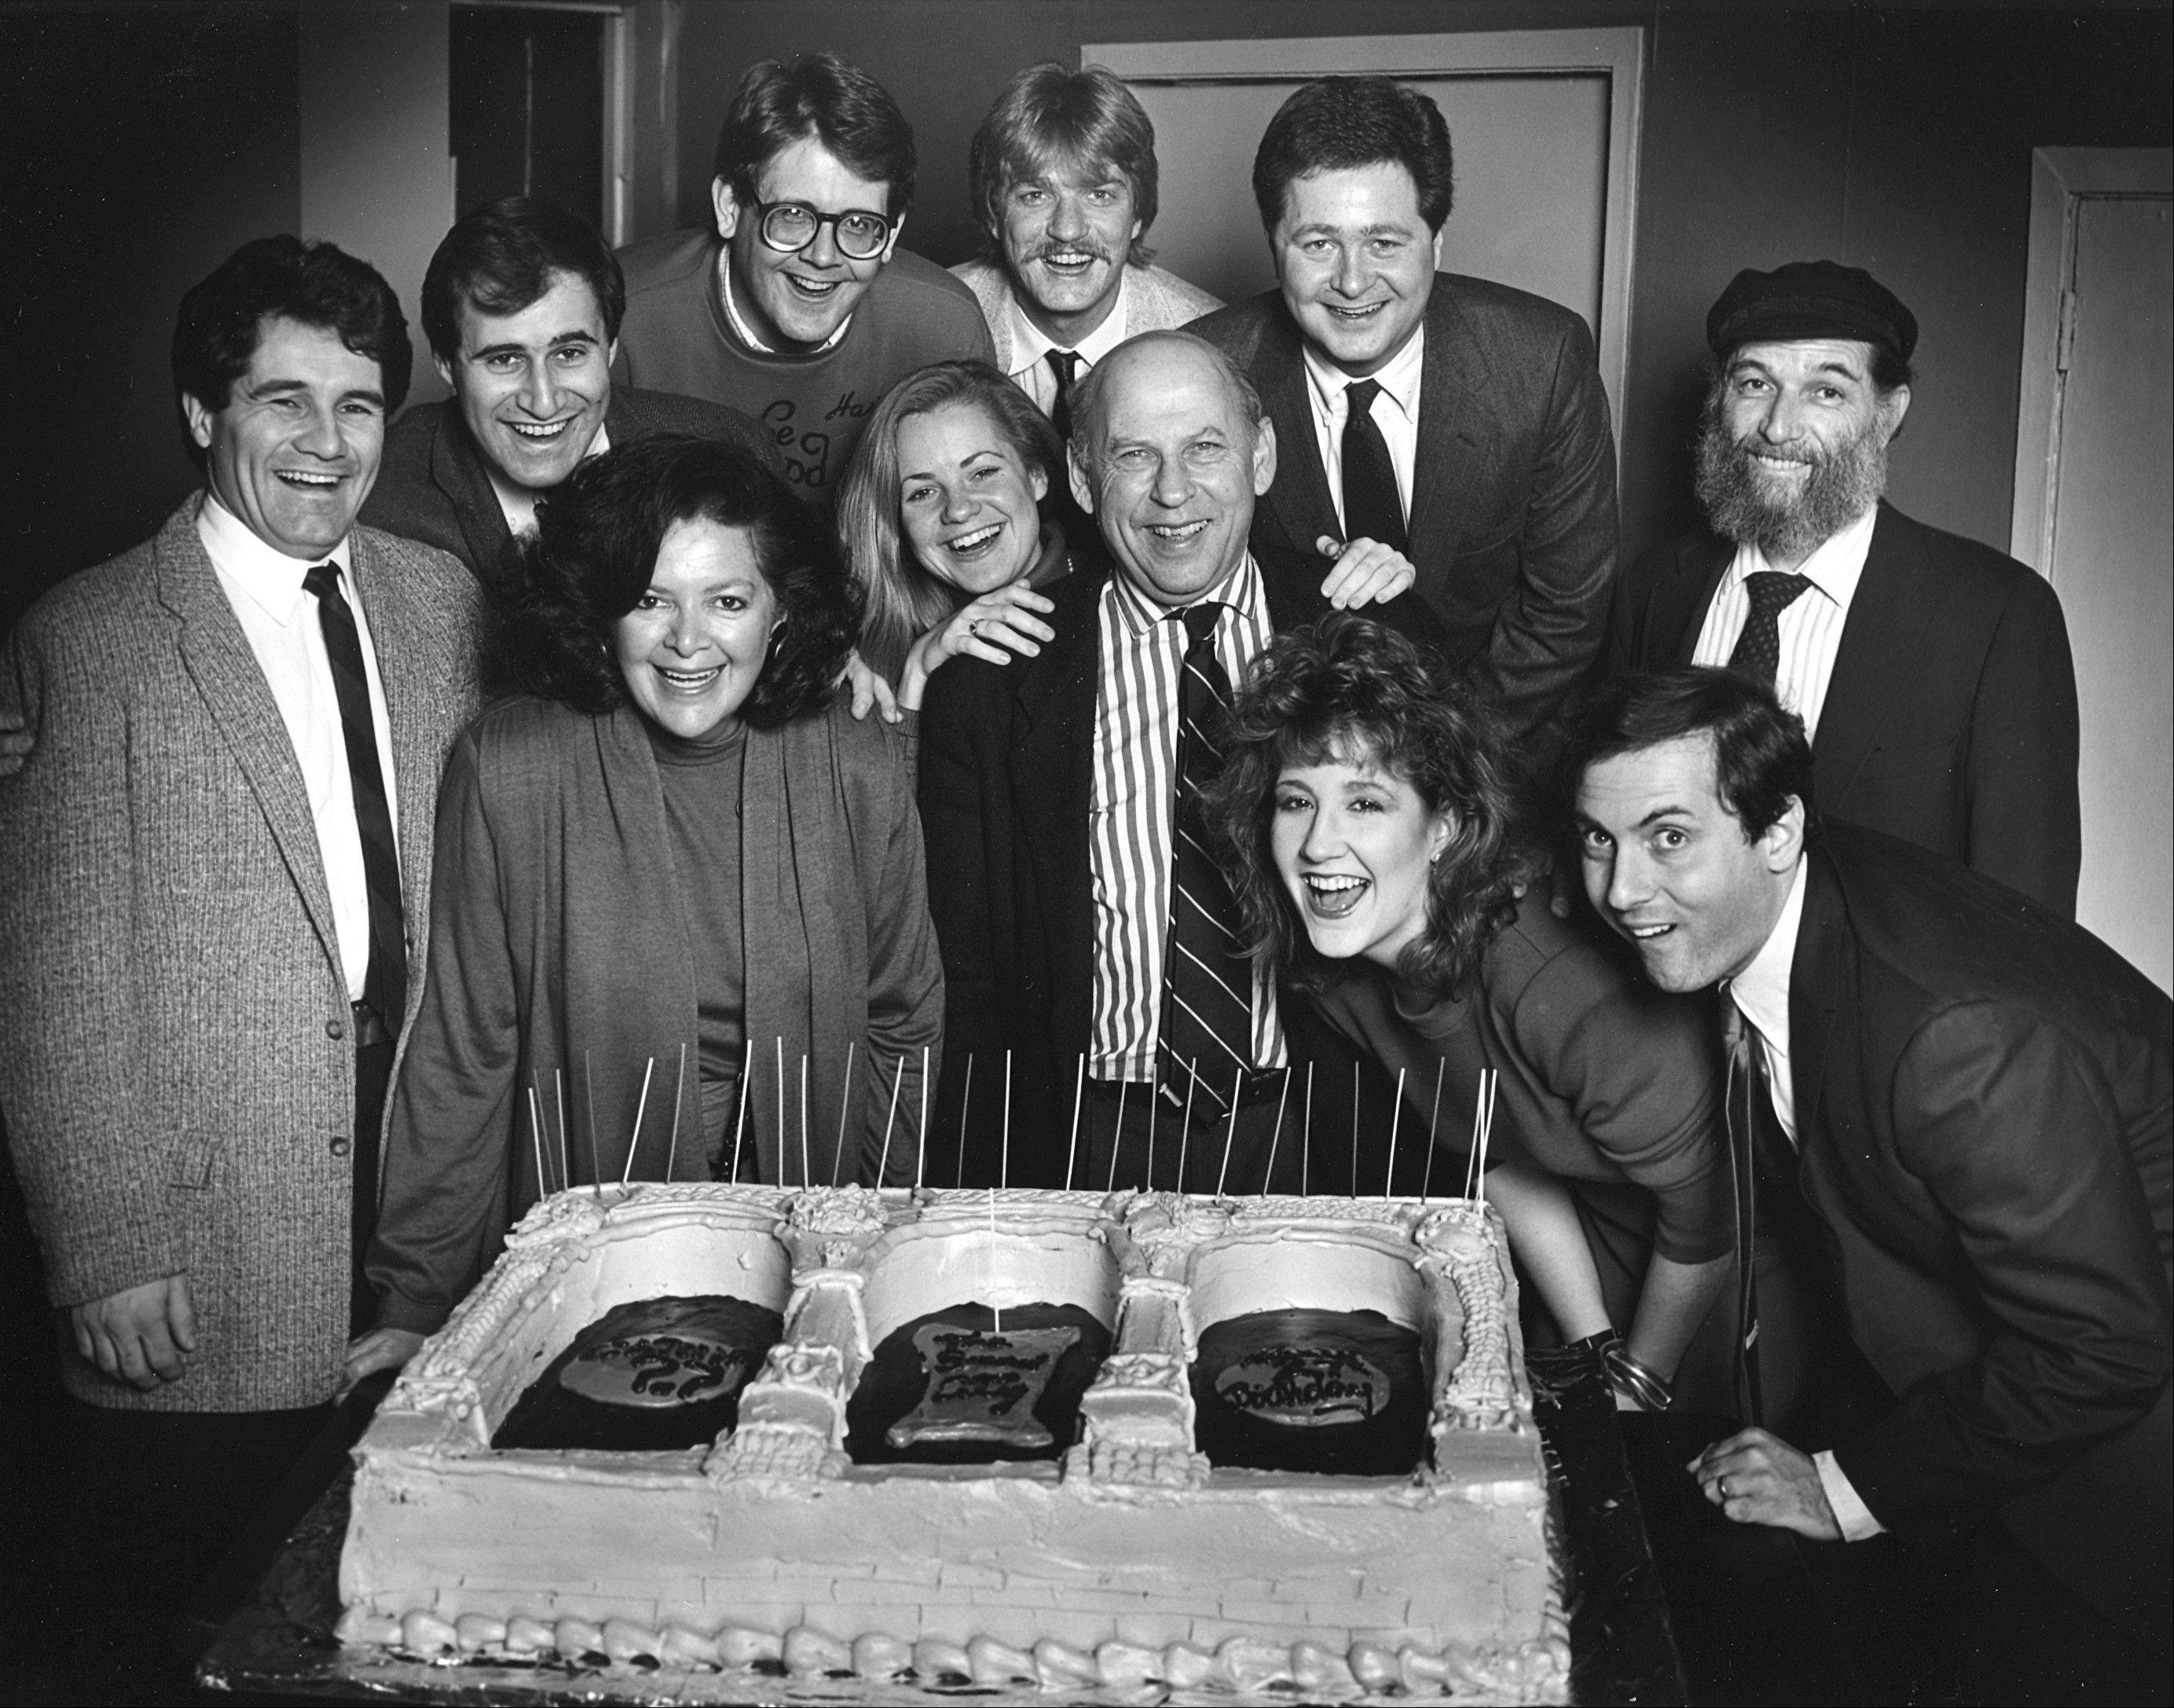 "Bernard Sahlins, co-founder of The Second City, poses with actors during an opening night party in Chicago. Sahlins, who nurtured the early careers of many of the earliest stars of ""Saturday Night Live,"" died Sunday at the age of 90. In the back row are: Rick Hall, Richard Kind, Harry Murphy, Craig Taylor, Jim Fay and Fred Kaz. In the front row are: Joyce Sloane, Bonnie Hunt, Sahlins, Maureen Kelly and Dan Castellaneta."